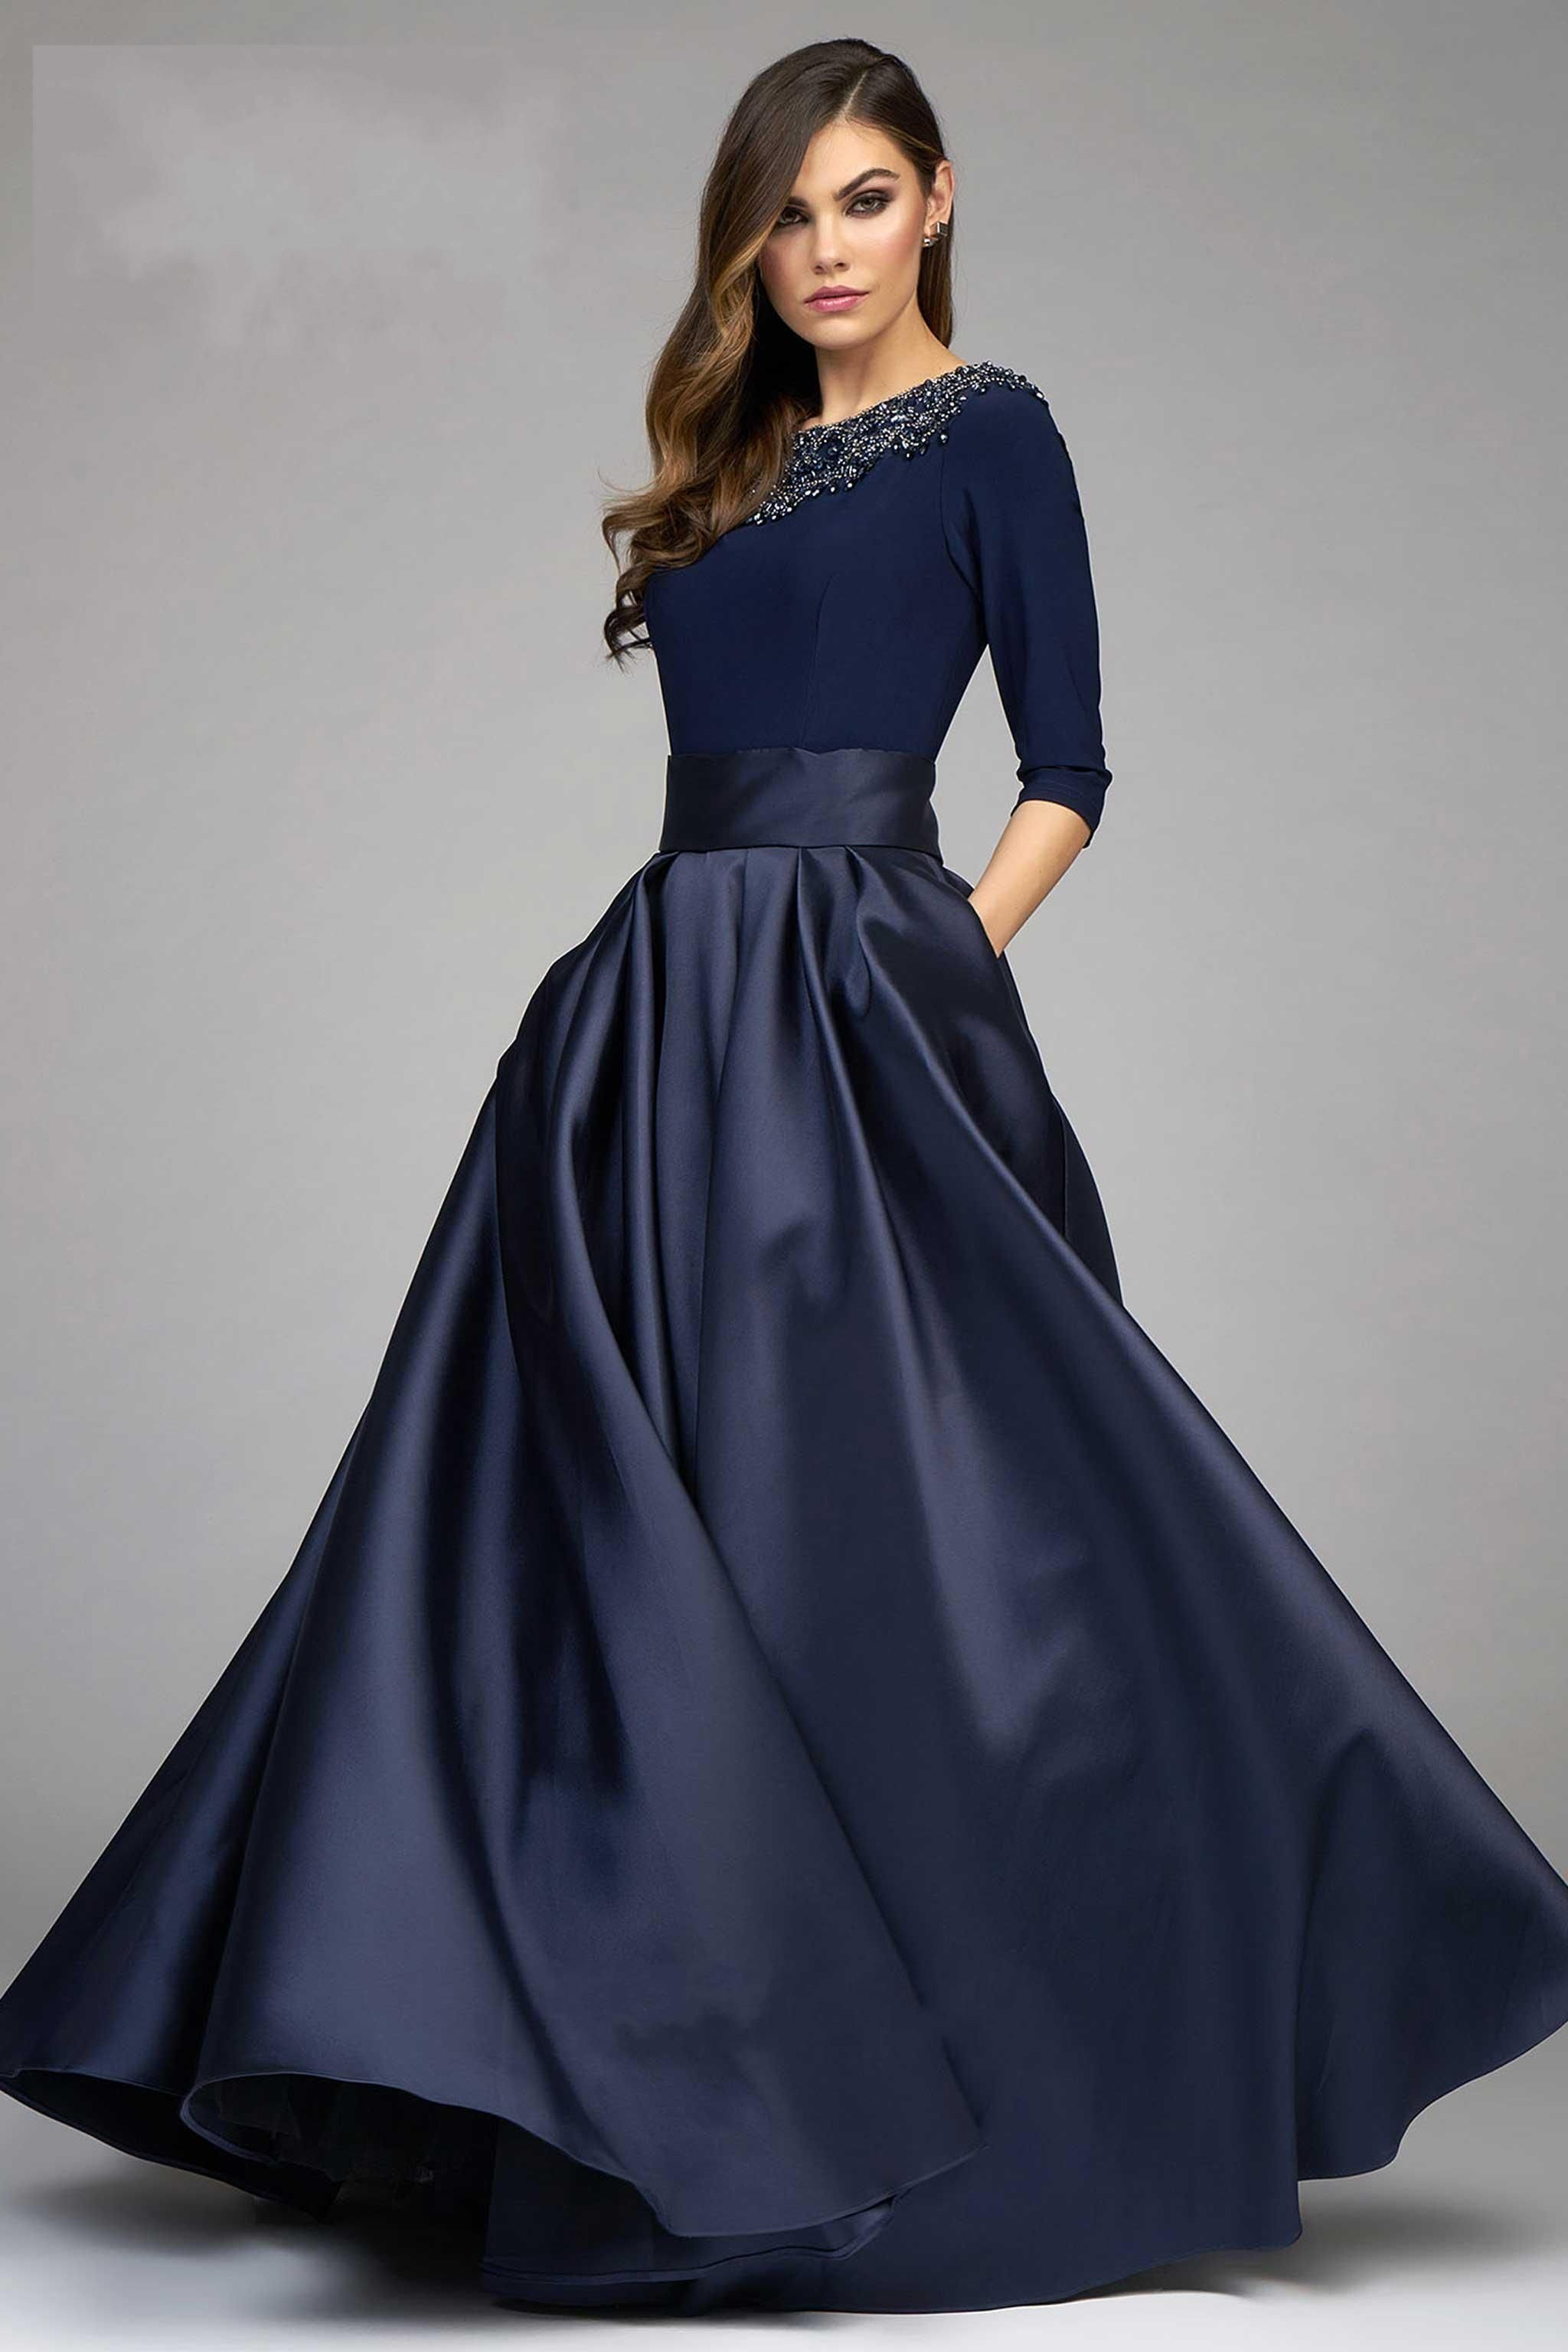 Fashion Ball Gown Dresses Evening Wear Navy Blue Long Sleeve